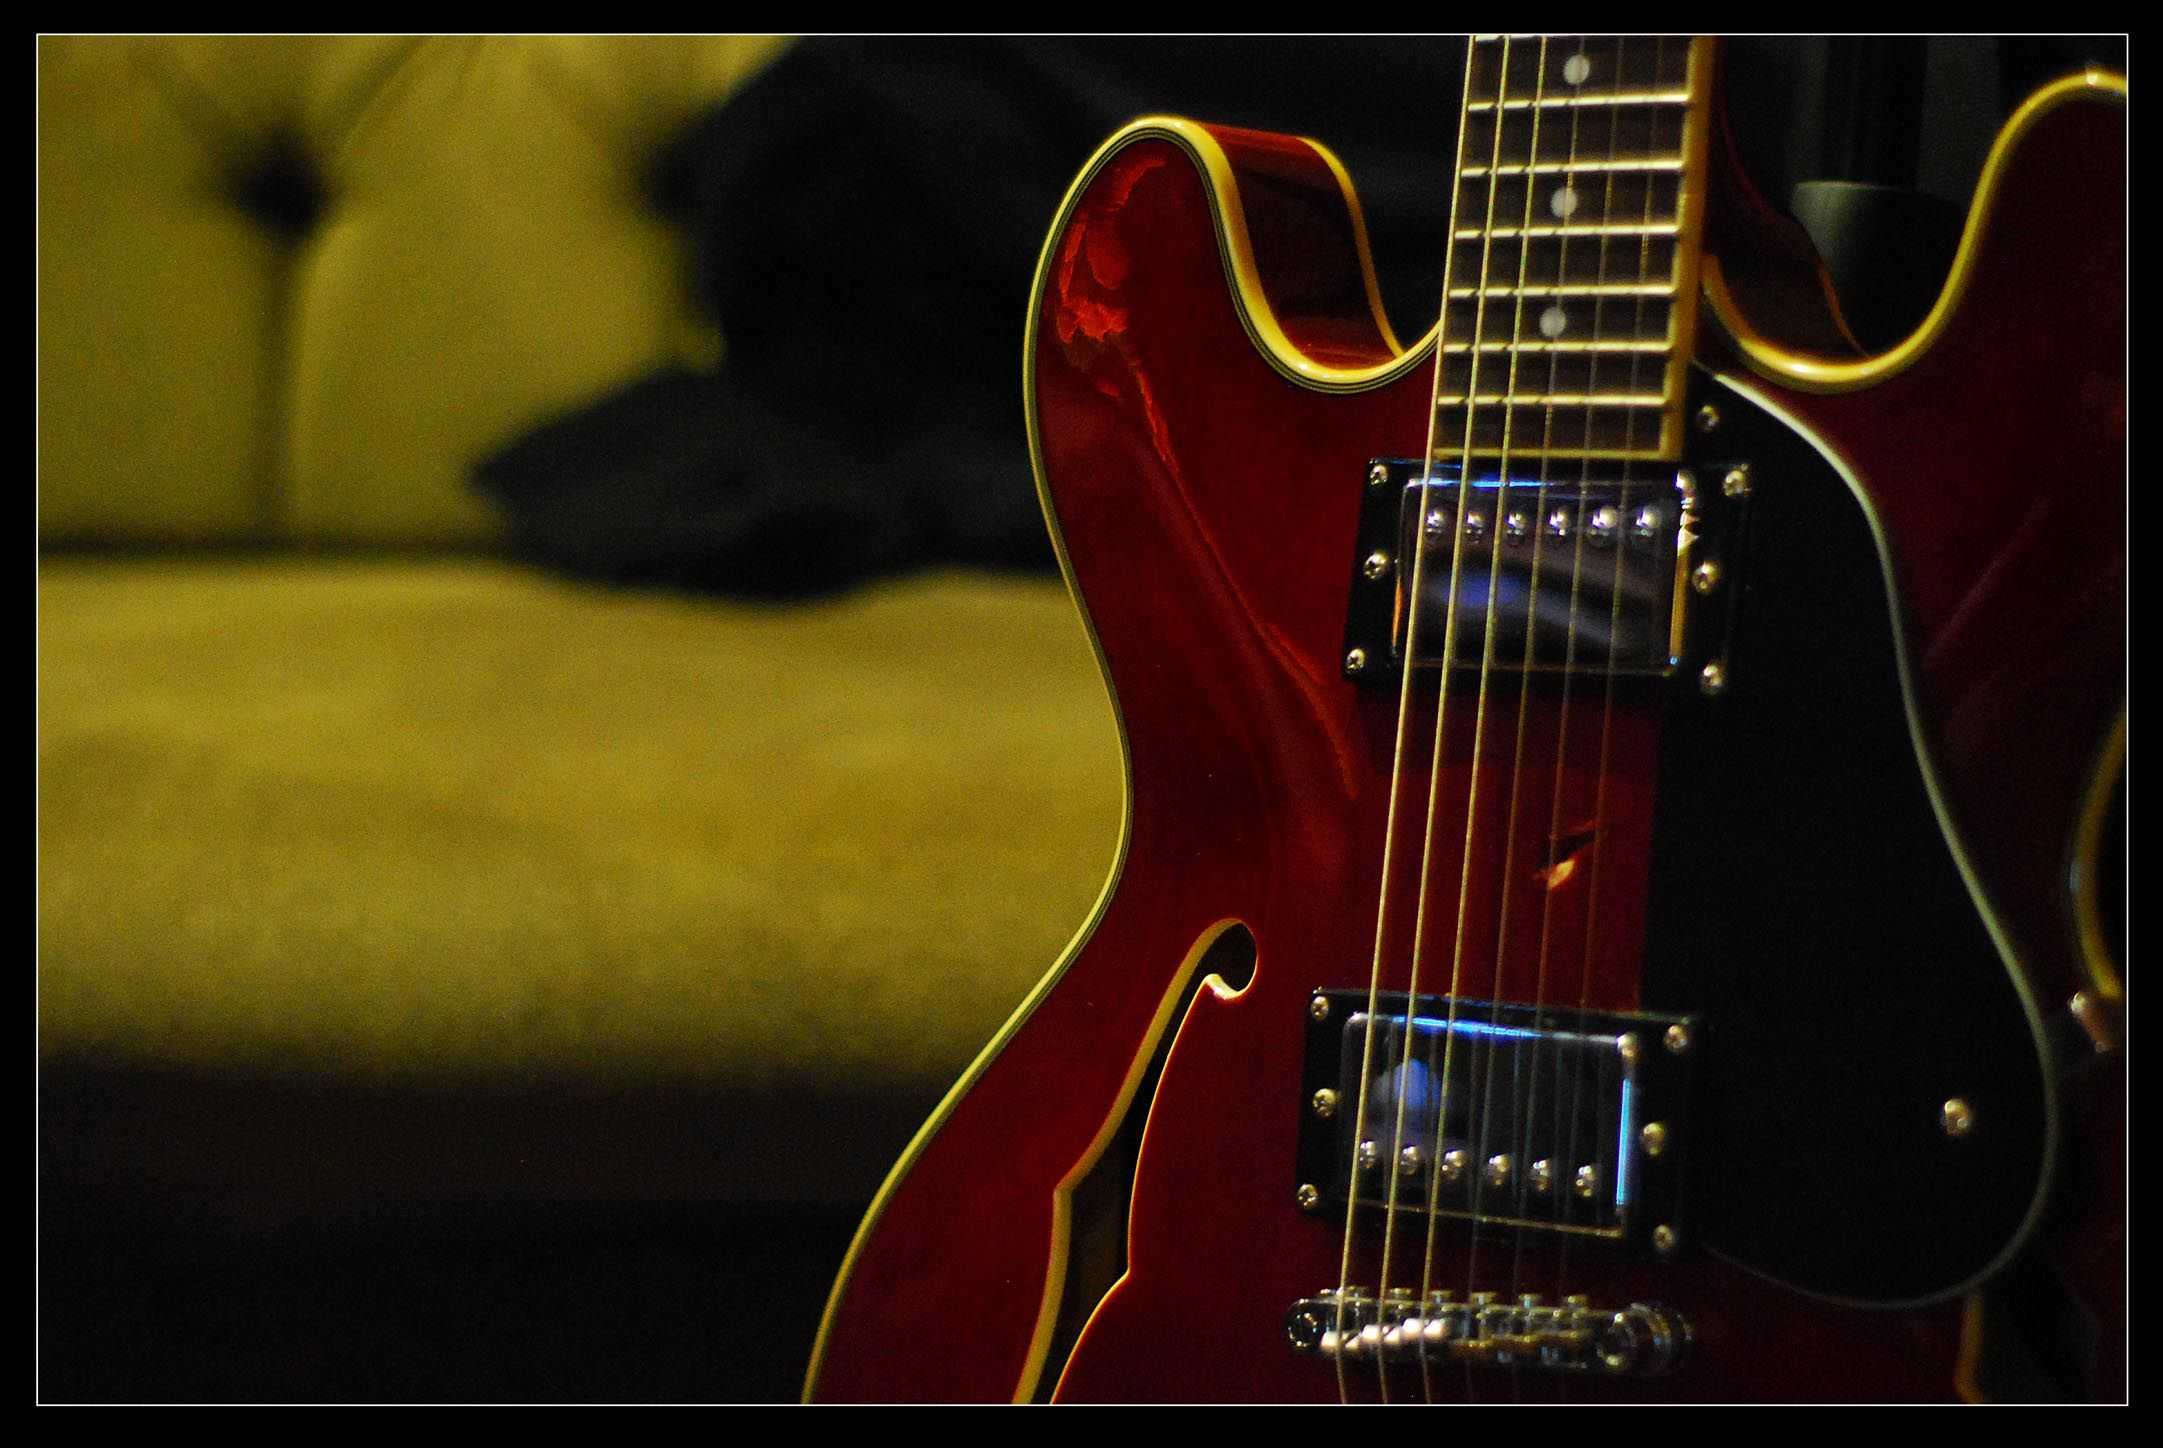 Vintage Red Guitar Wallpaper From Guitar Wallpapers Wallpapers